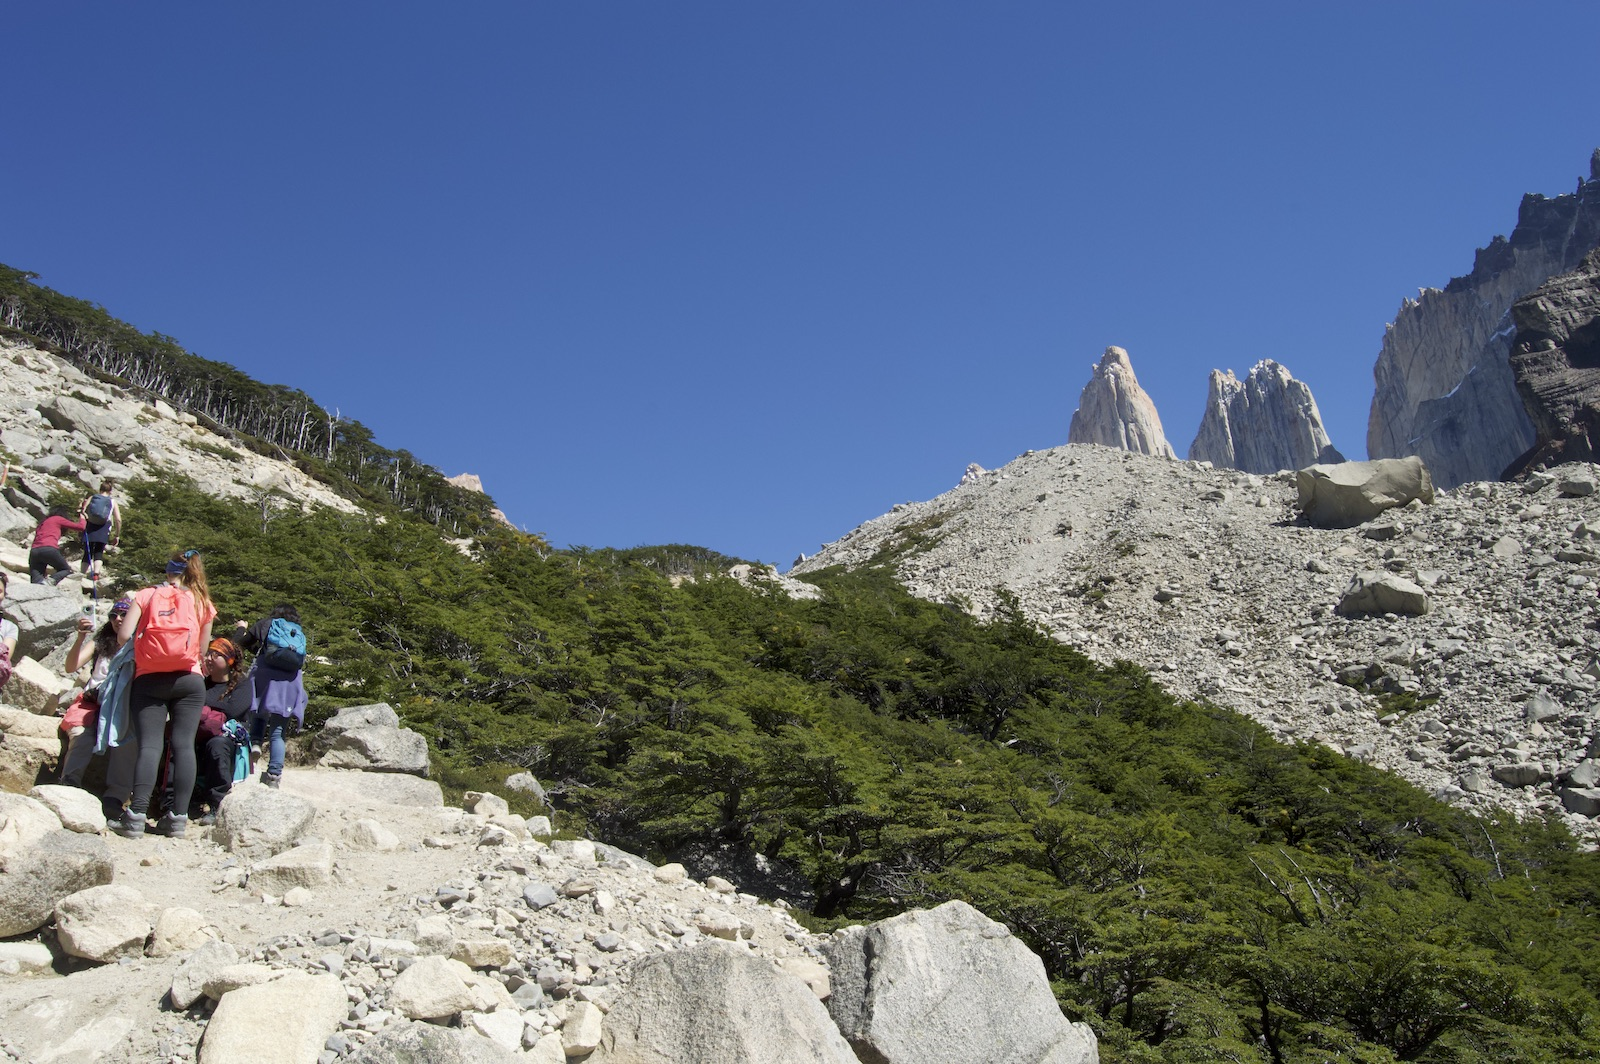 Hikers leading up the final ascent to the Torres on the Mirador Las Torres hike in February in Patagonia